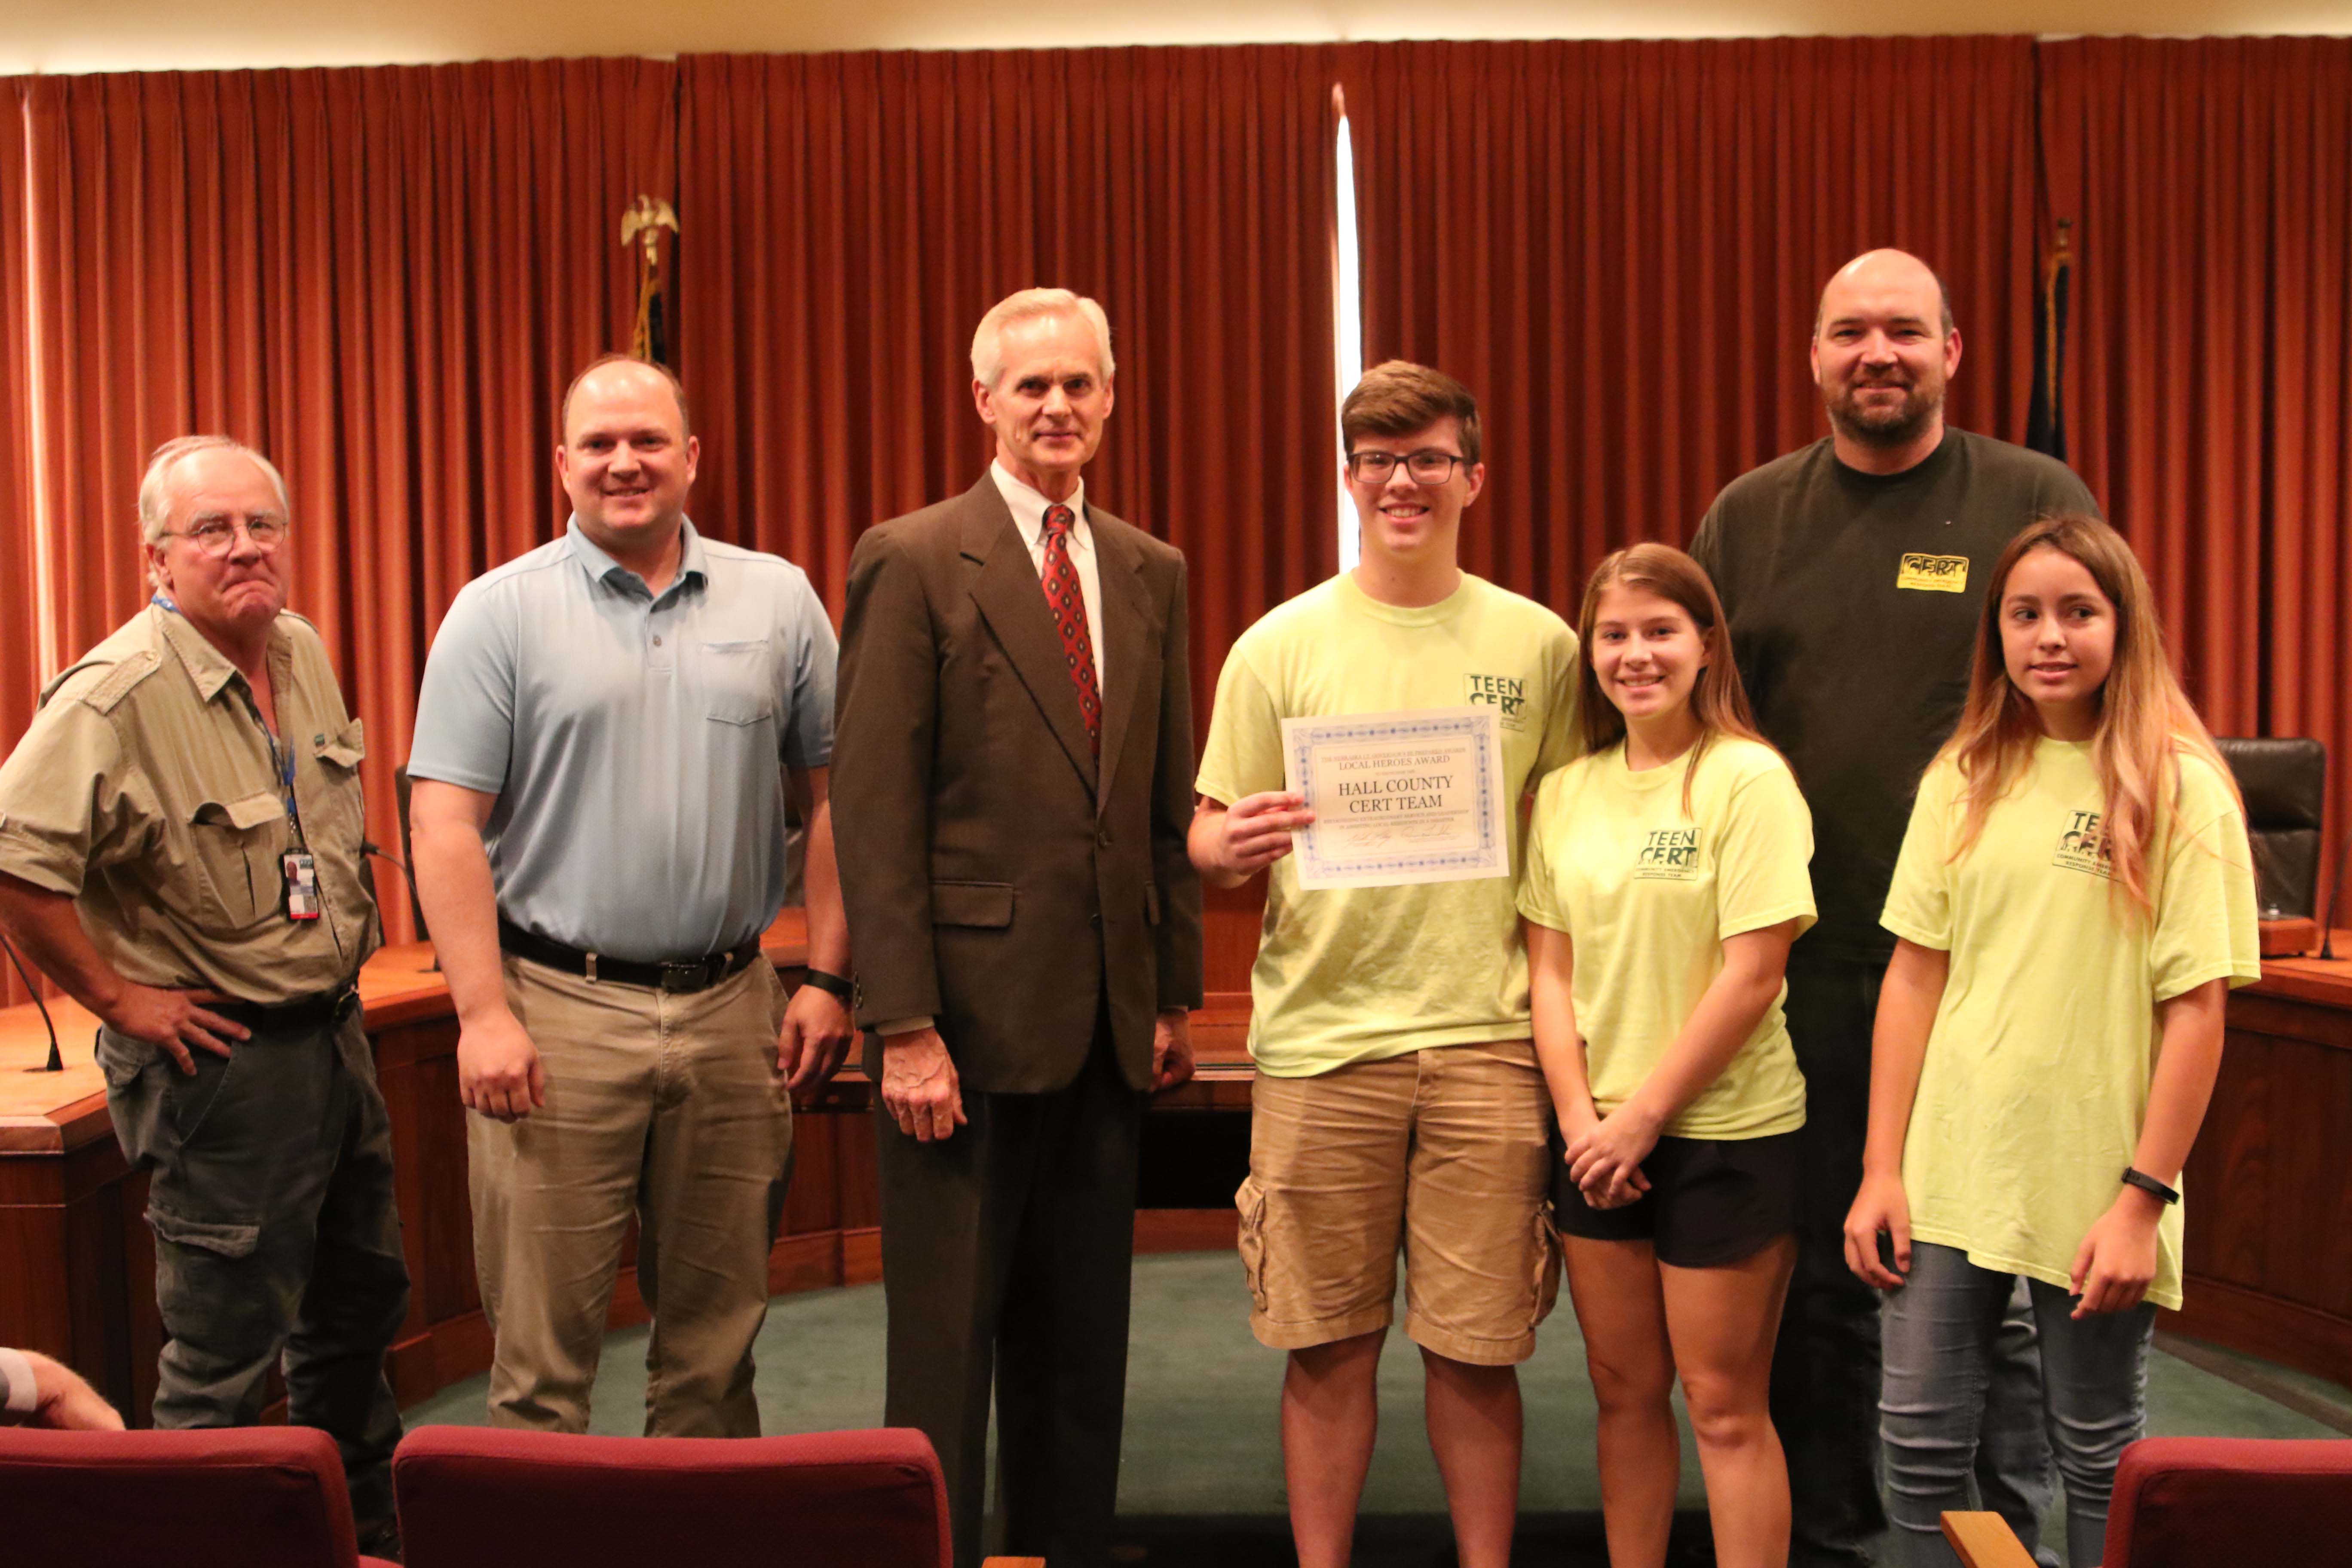 Lt. Gov. Mike Foley presents a Local Heroes Award to the Hall County CERT. Pictured from left, Lynn Guzinski, Aaron Wordyn, Lt. Gov. Foley, Jacob Weller, Ellie Mora, Jeremy Fanta and Destiny Lucero.